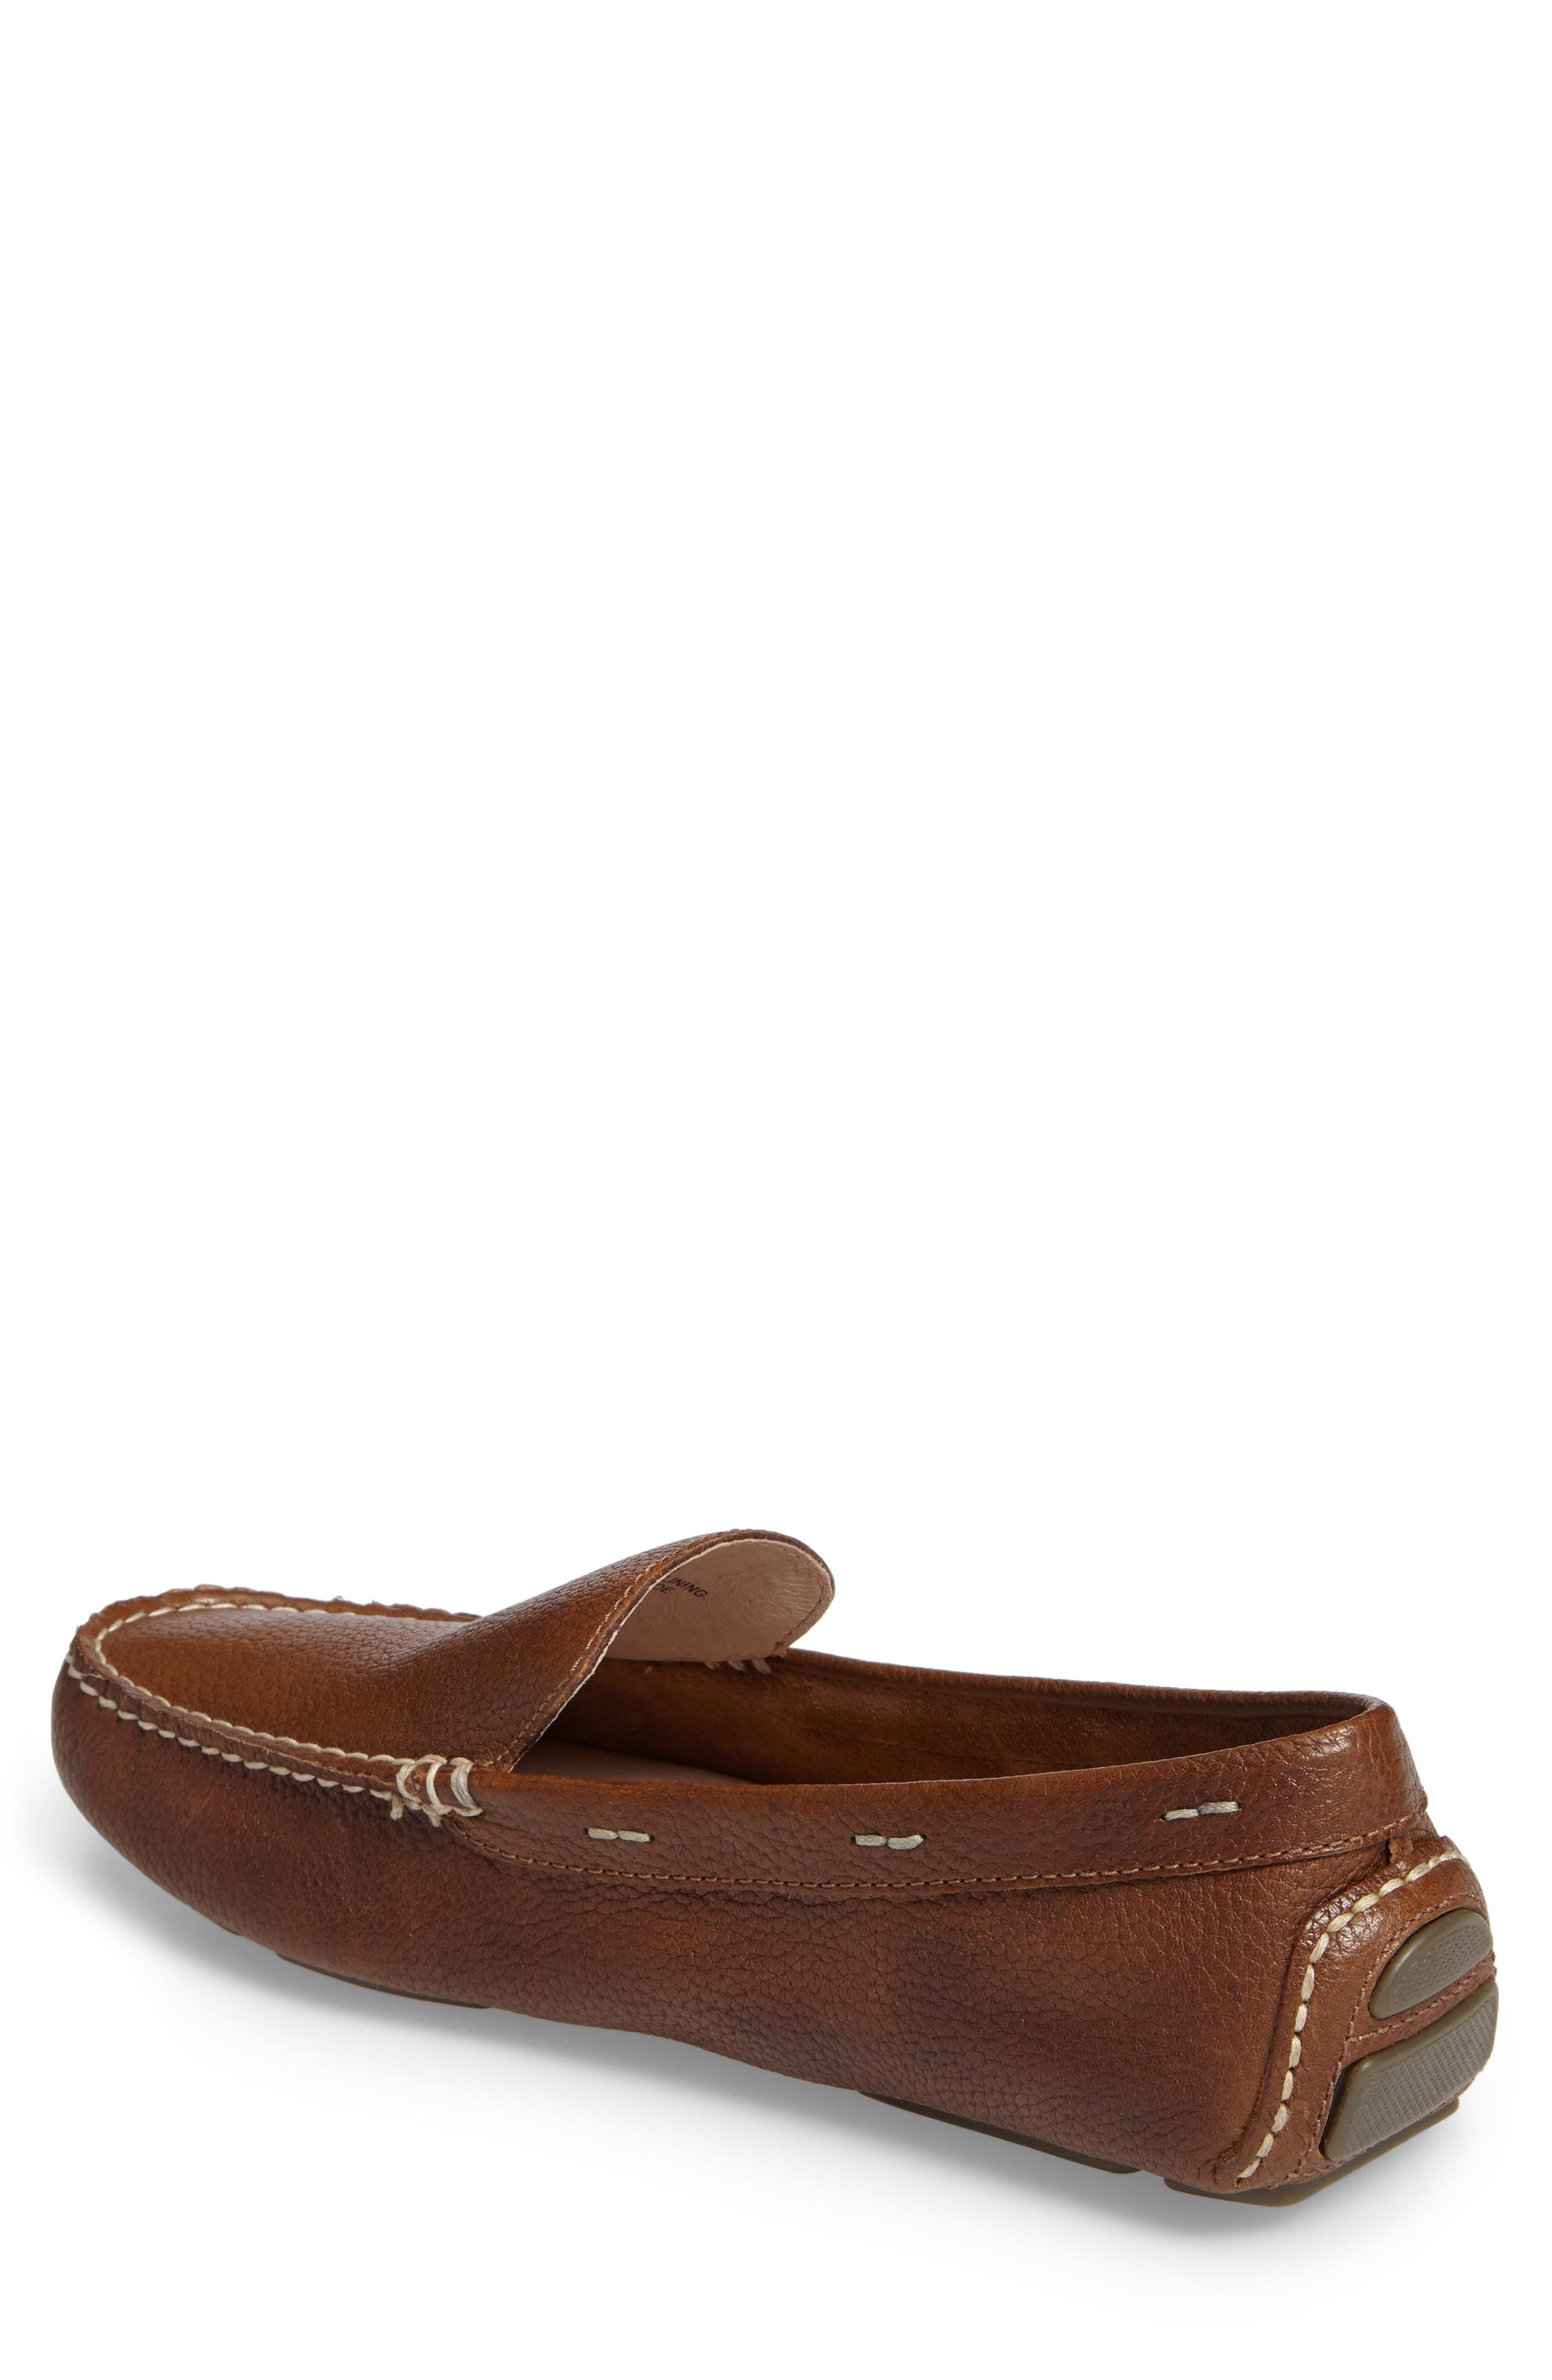 Pagota Driving Loafer,                             Alternate thumbnail 12, color,